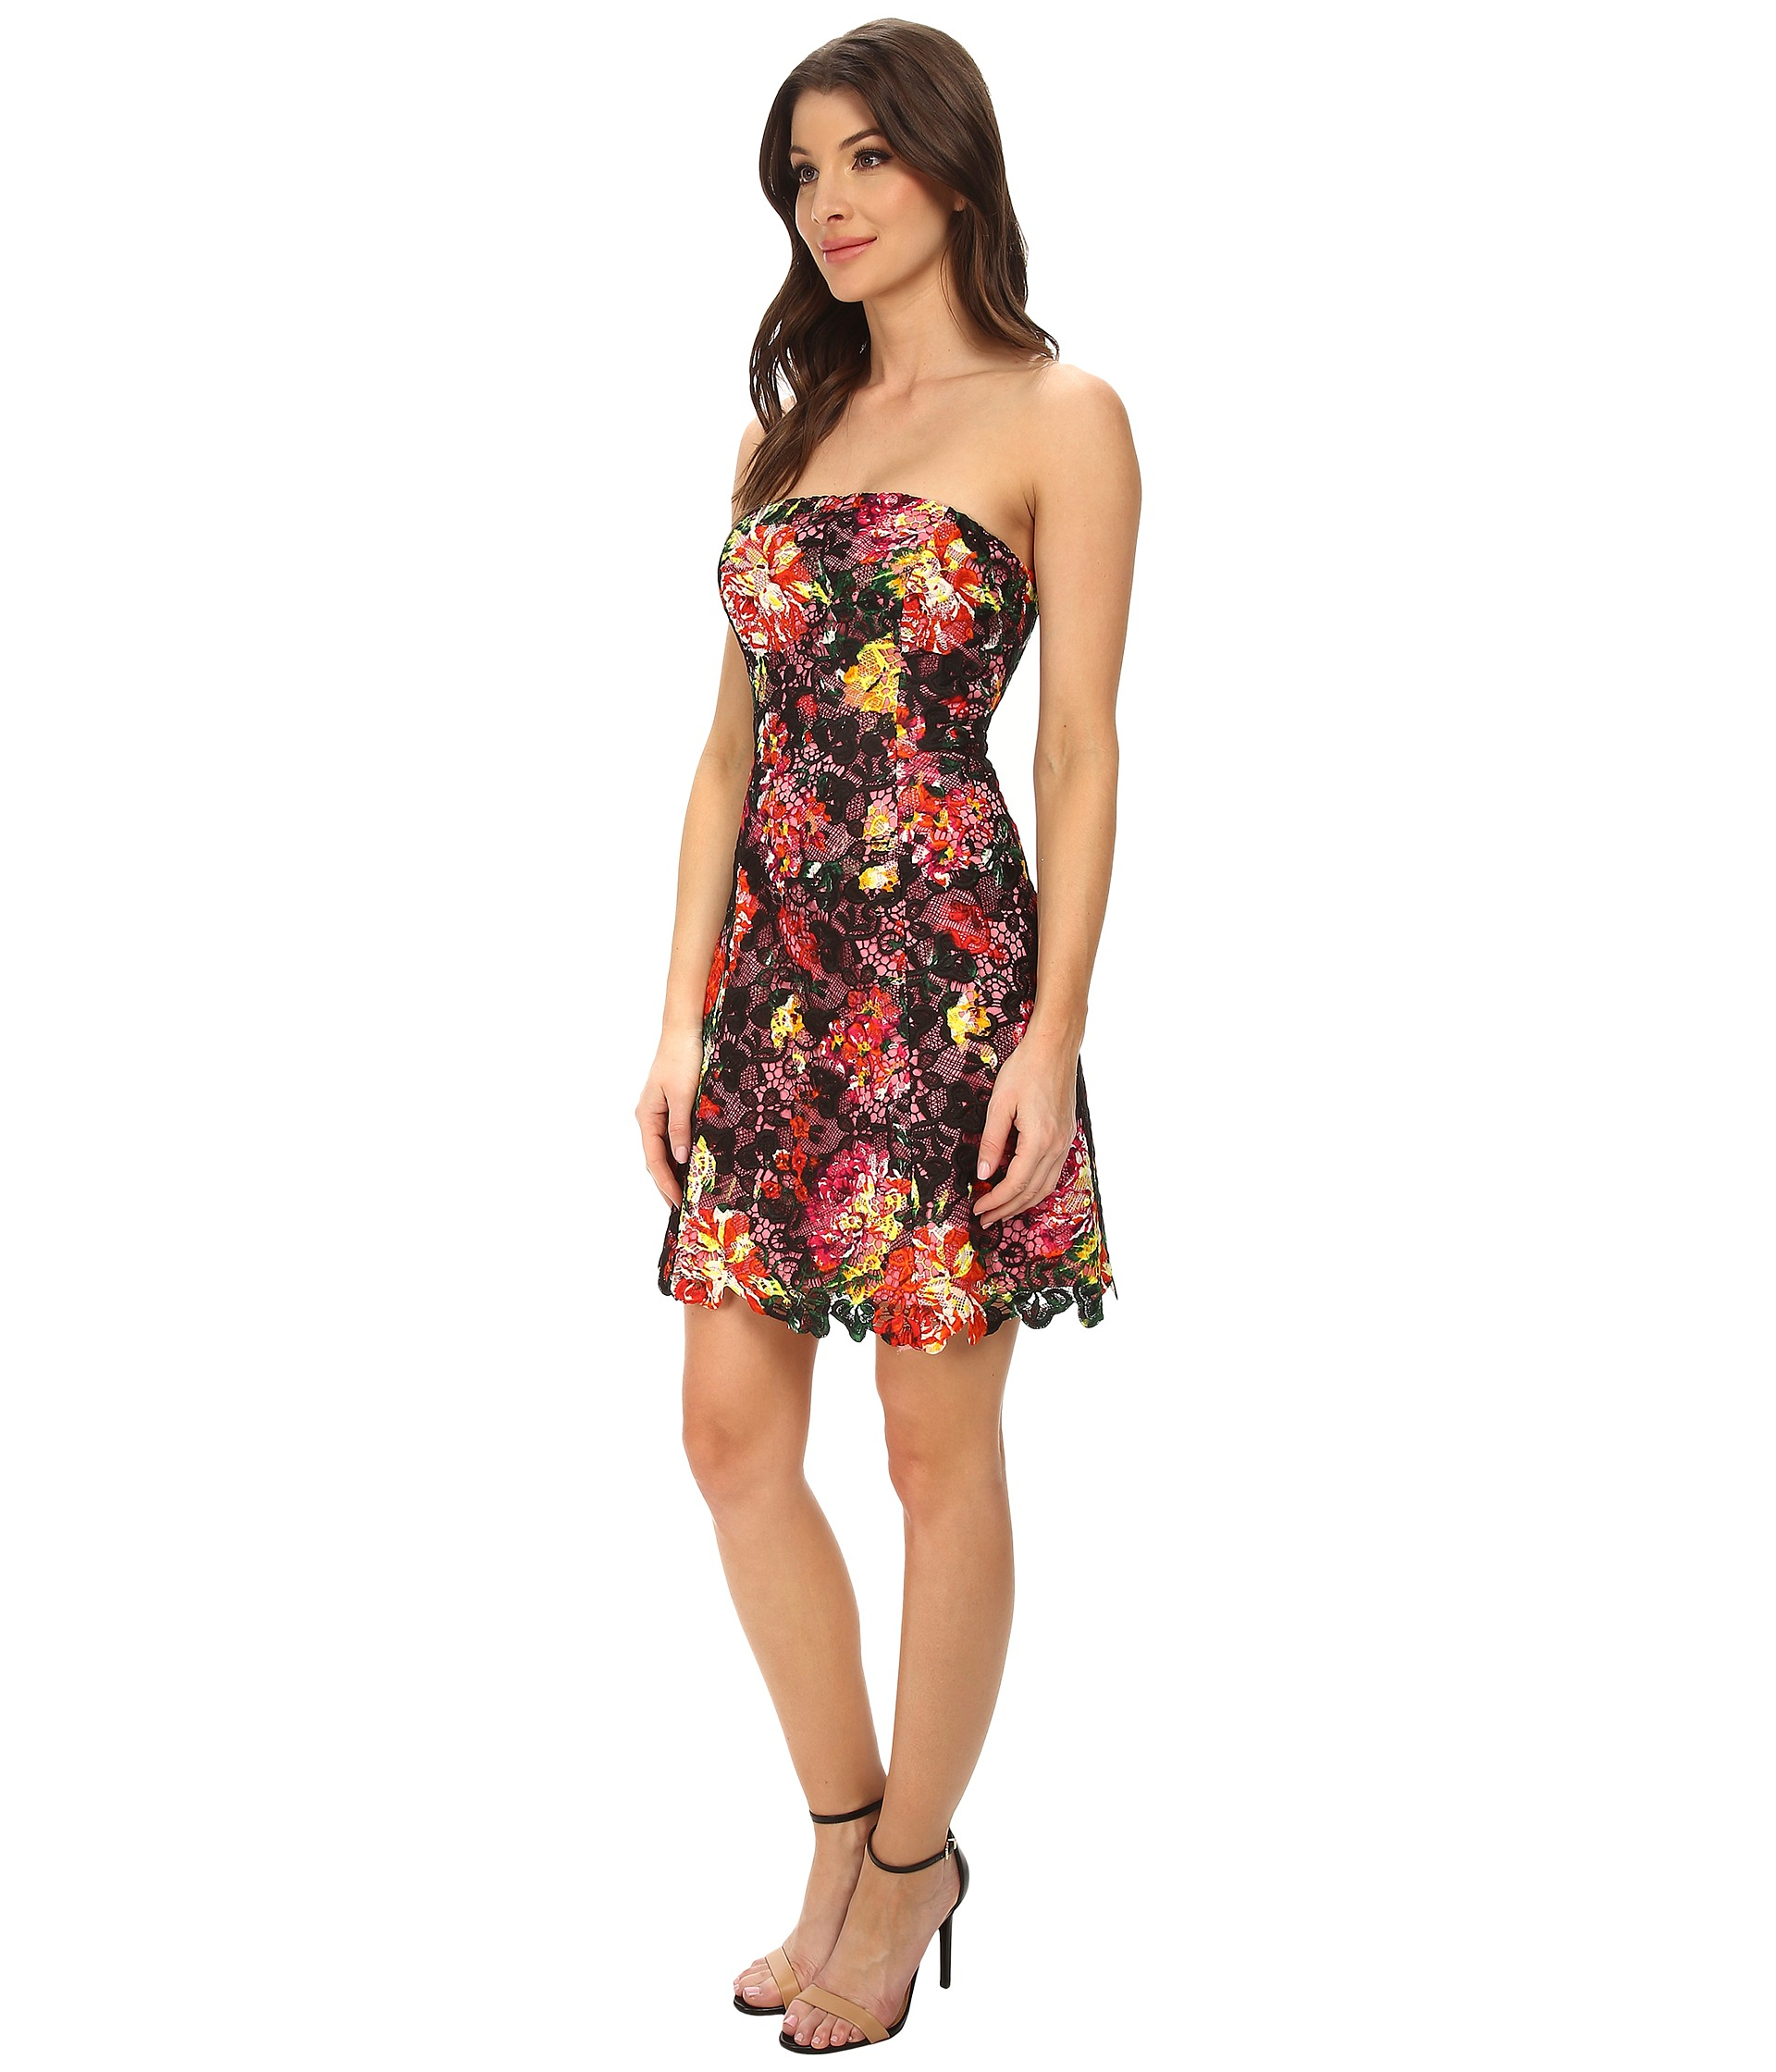 Adrianna Papell Strapless Floral Print Lace Dress Lyst